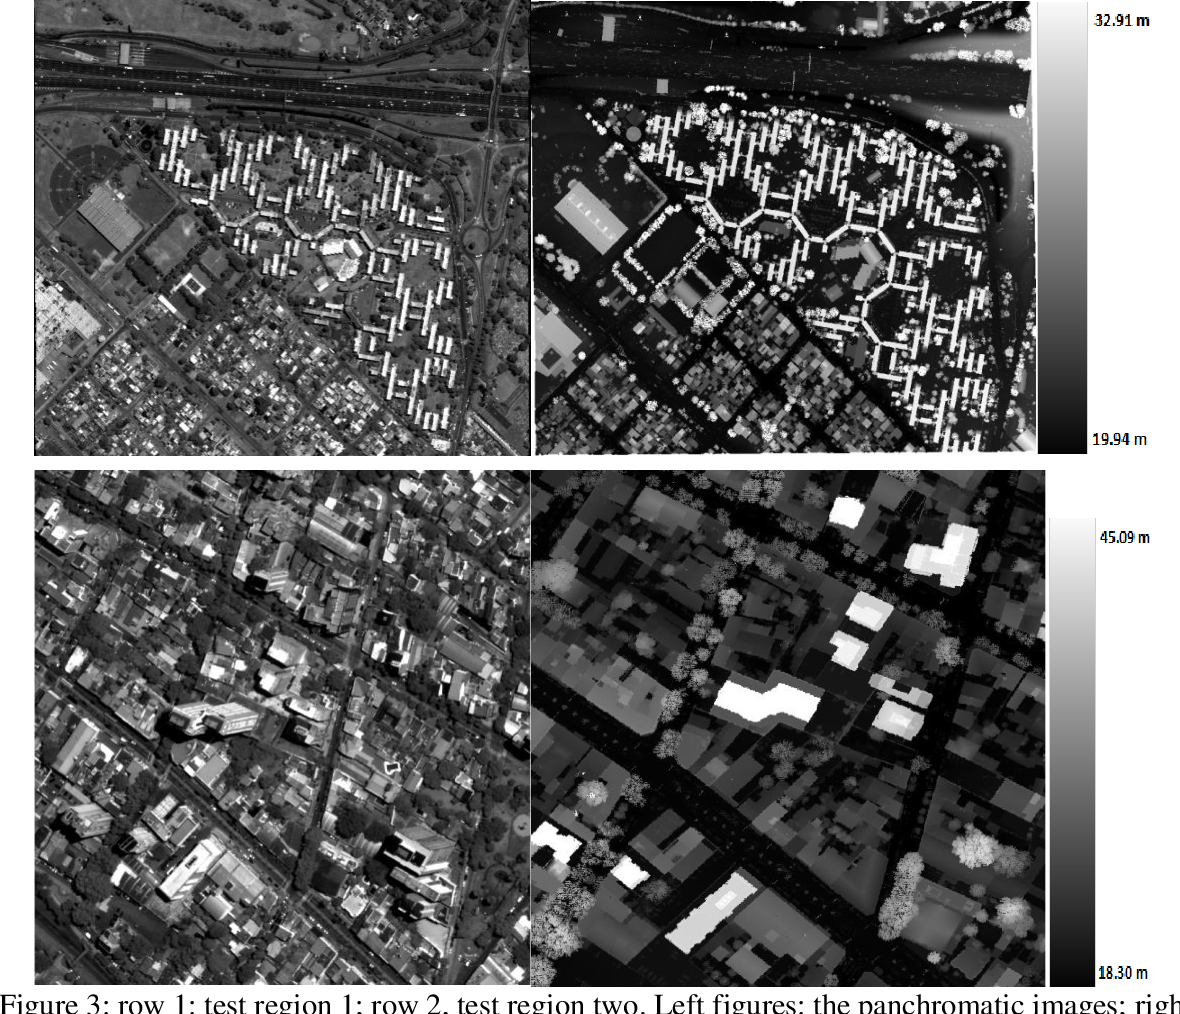 Figure 4 for Automated 3D recovery from very high resolution multi-view satellite images